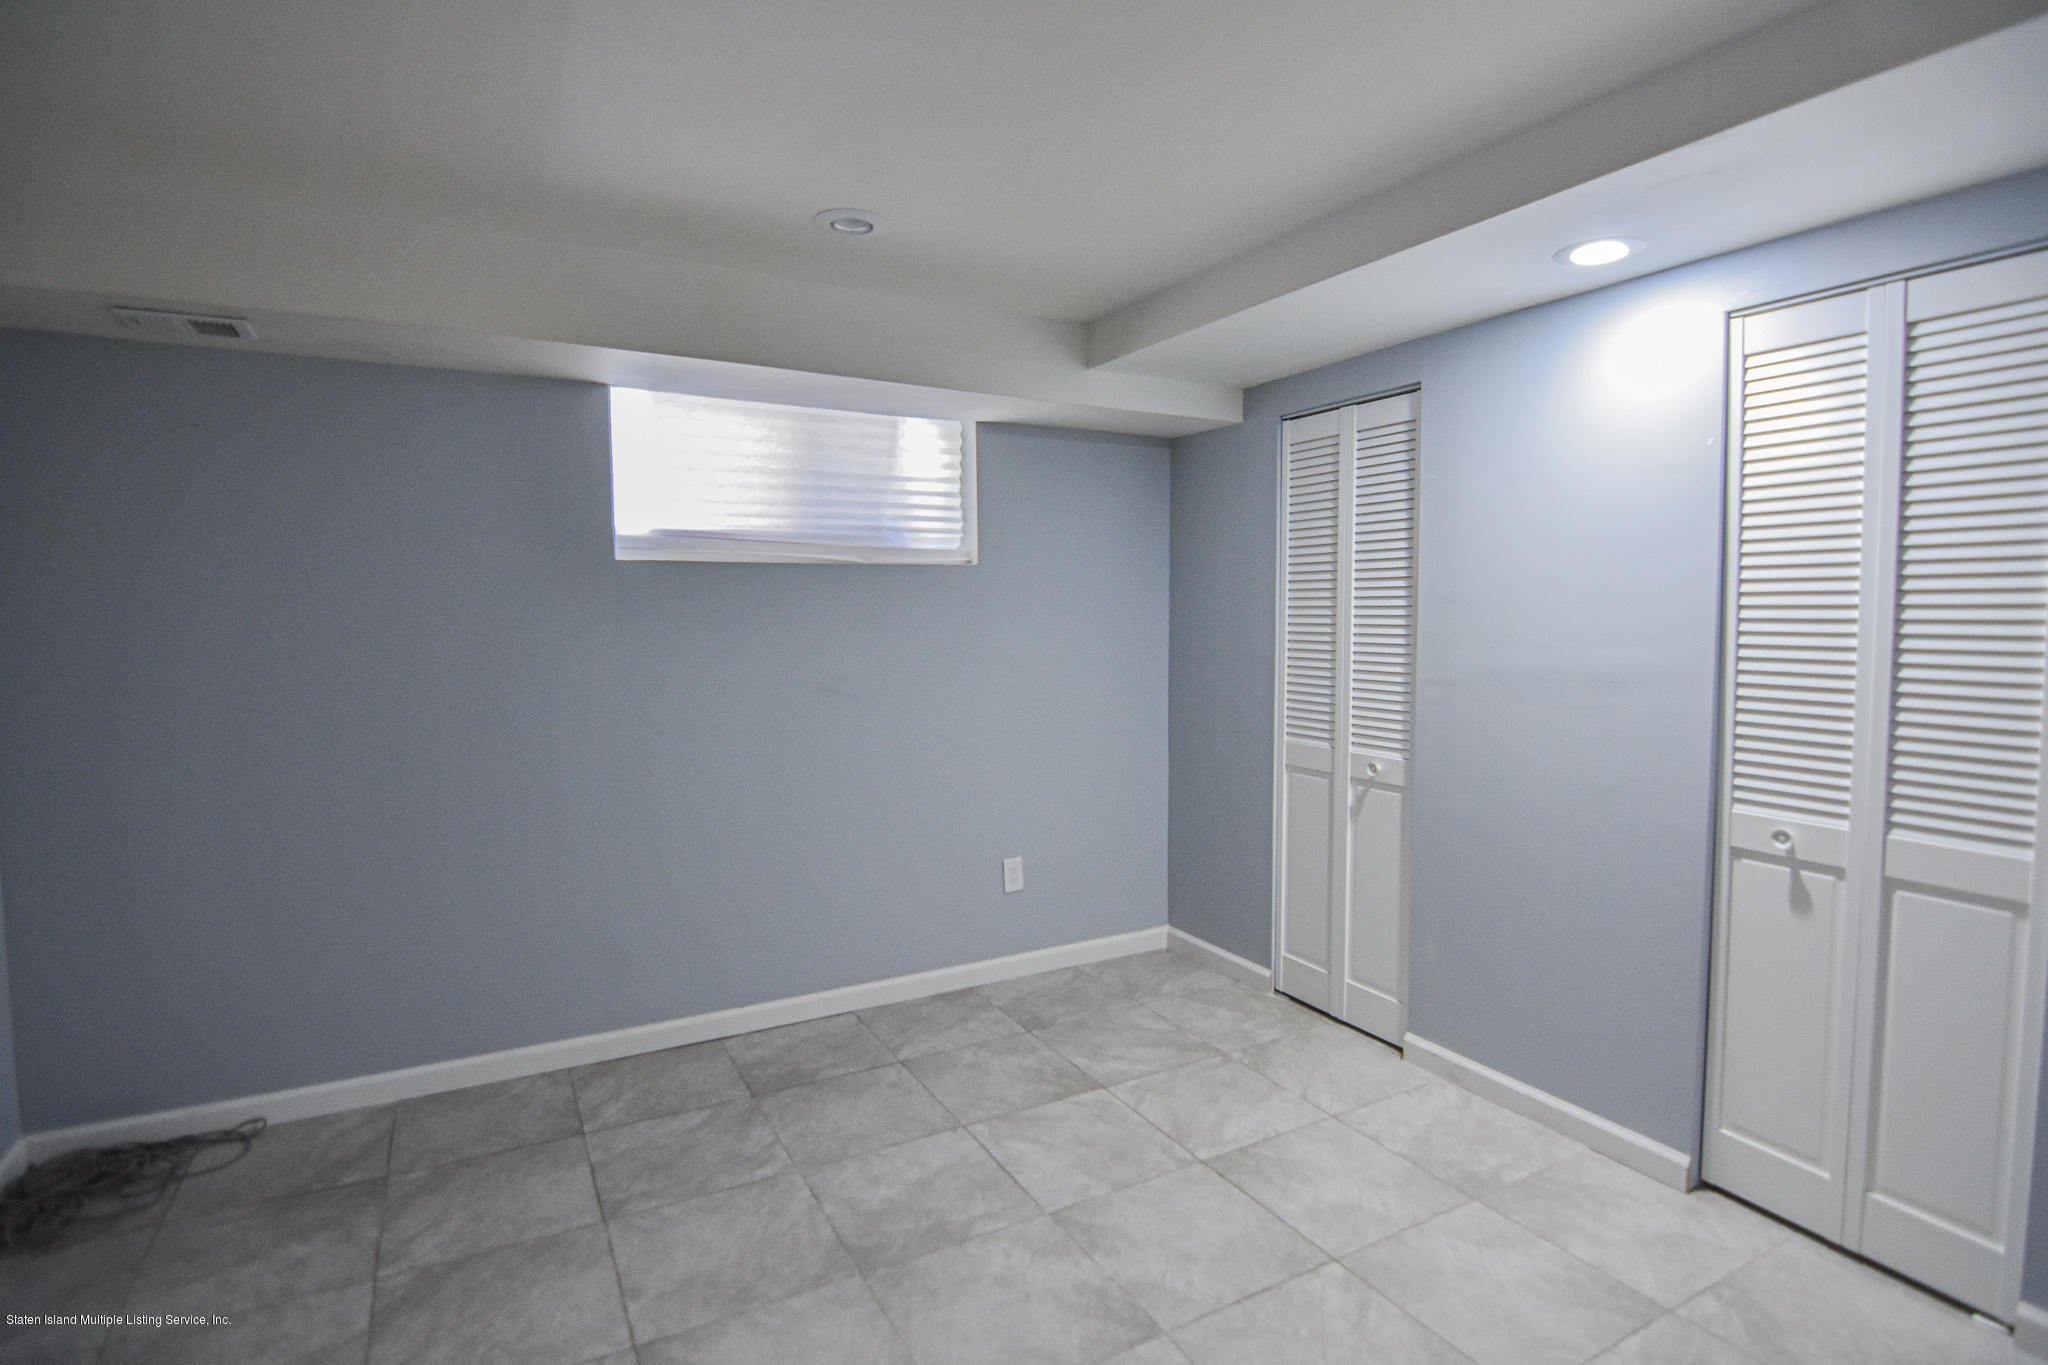 Single Family - Semi-Attached 12 Ebey Lane  Staten Island, NY 10312, MLS-1131132-21